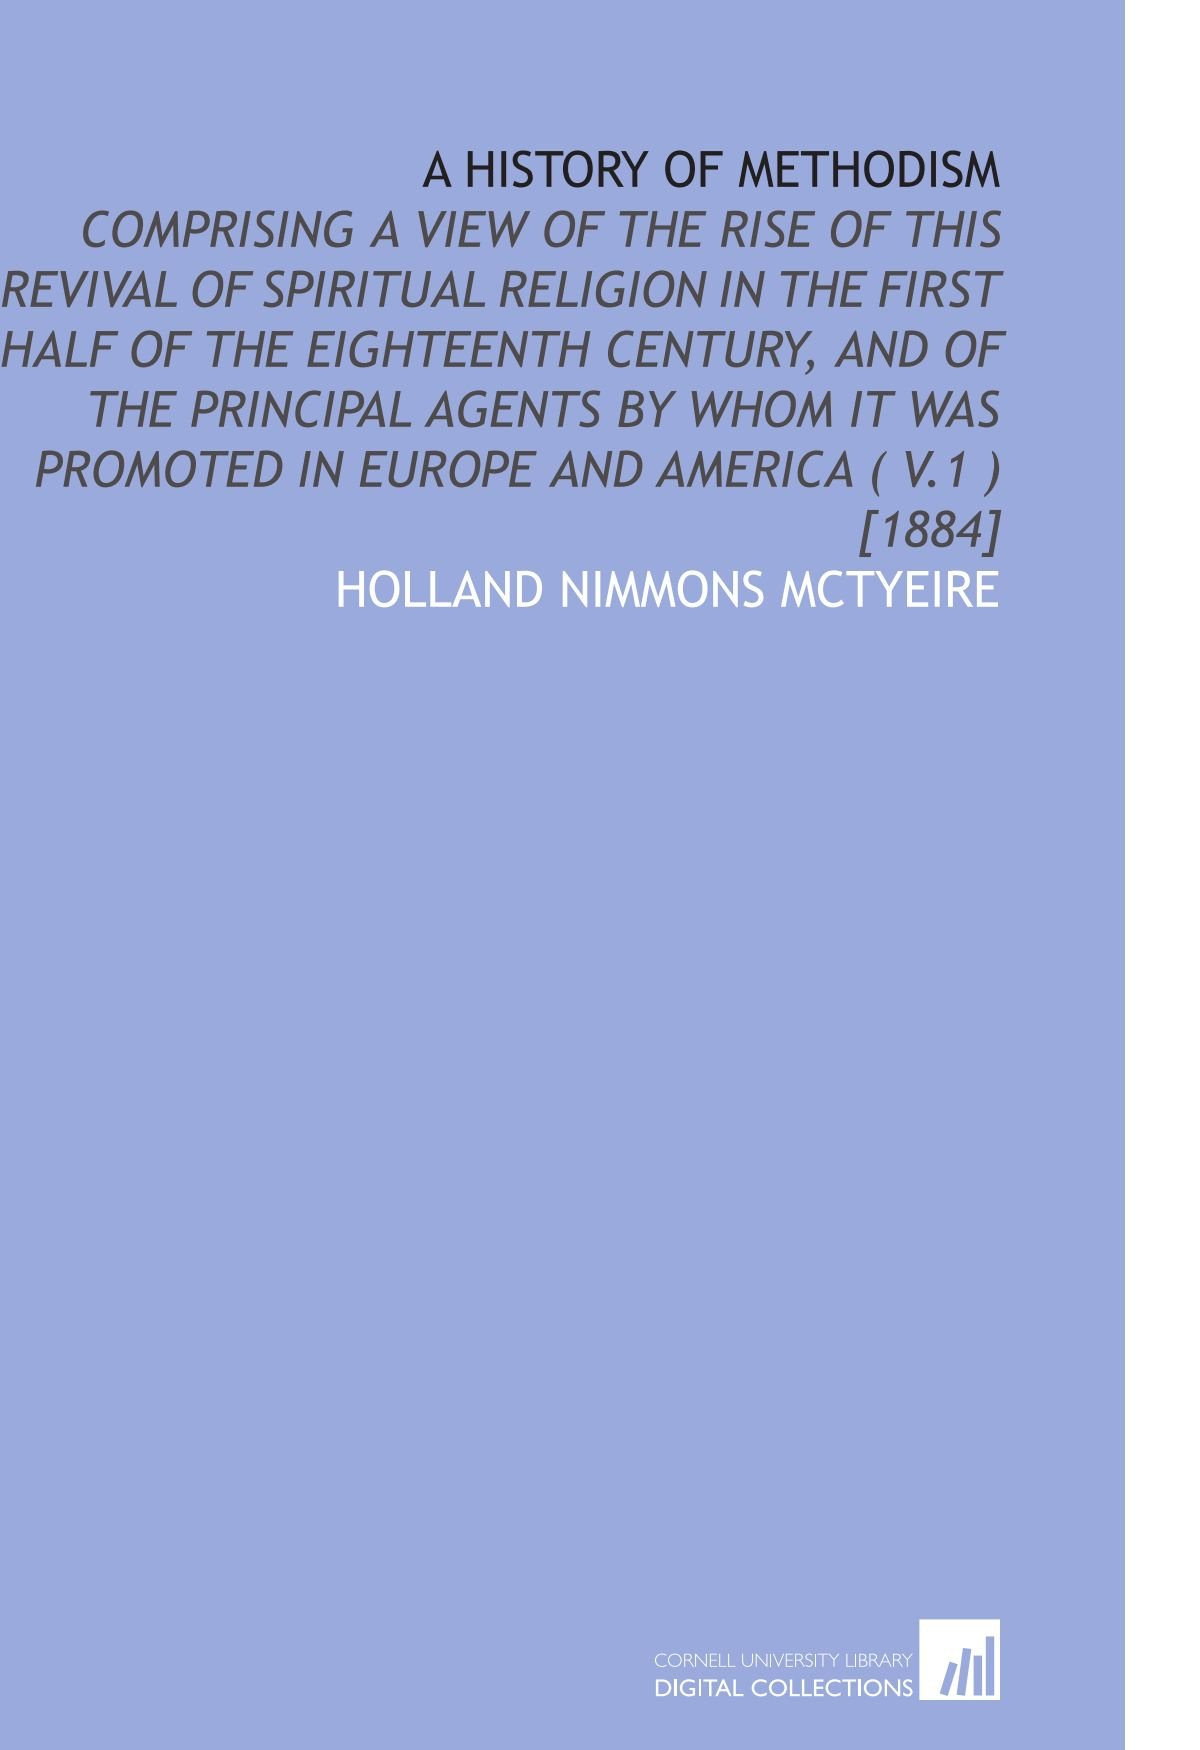 A History of Methodism: Comprising a View of the Rise of This Revival of Spiritual Religion in the First Half of the Eighteenth Century, and of the ... Promoted in Europe and America ( V.1 ) [1884] ebook